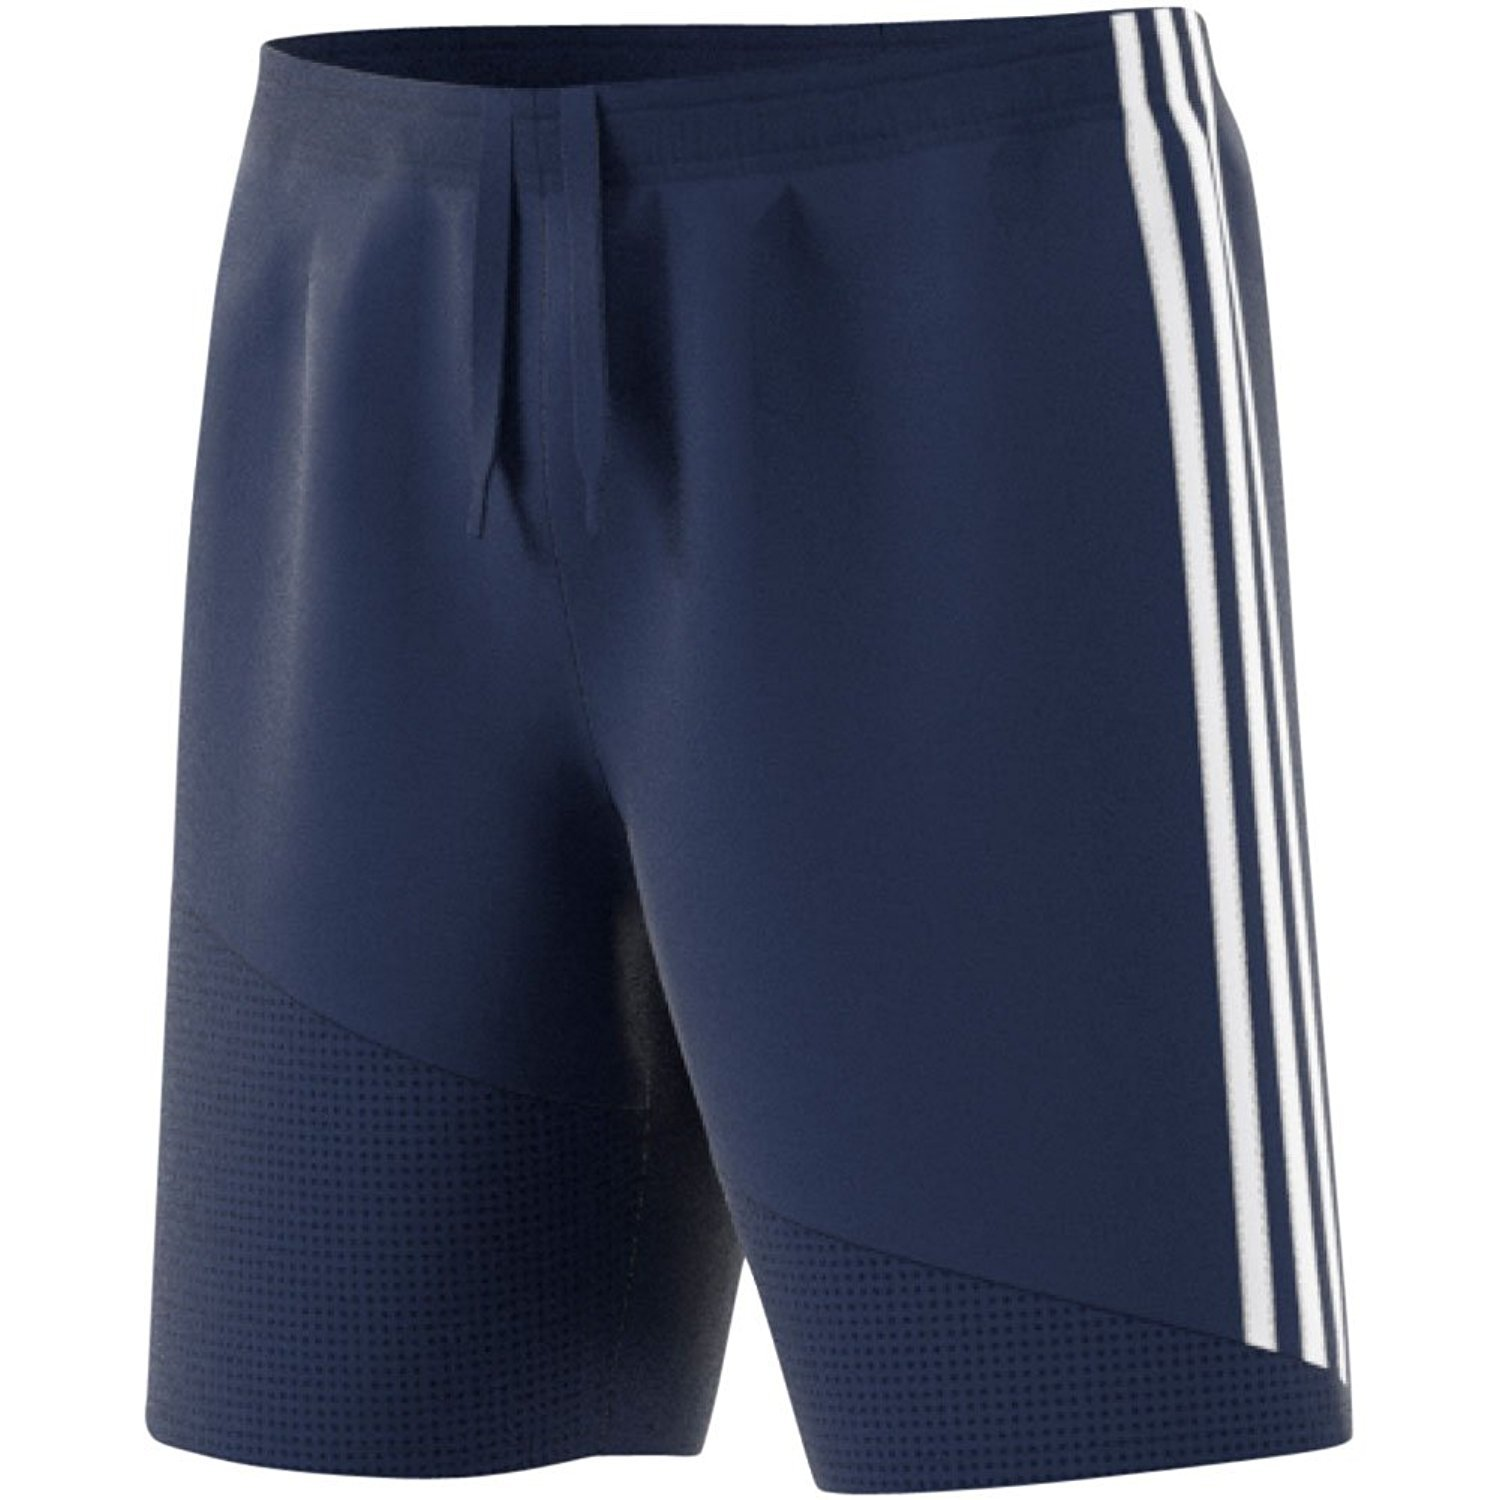 Adidas Youth Regista 16 Short B01866E28A Youth Small|Dark Blue-White Dark Blue-White Youth Small